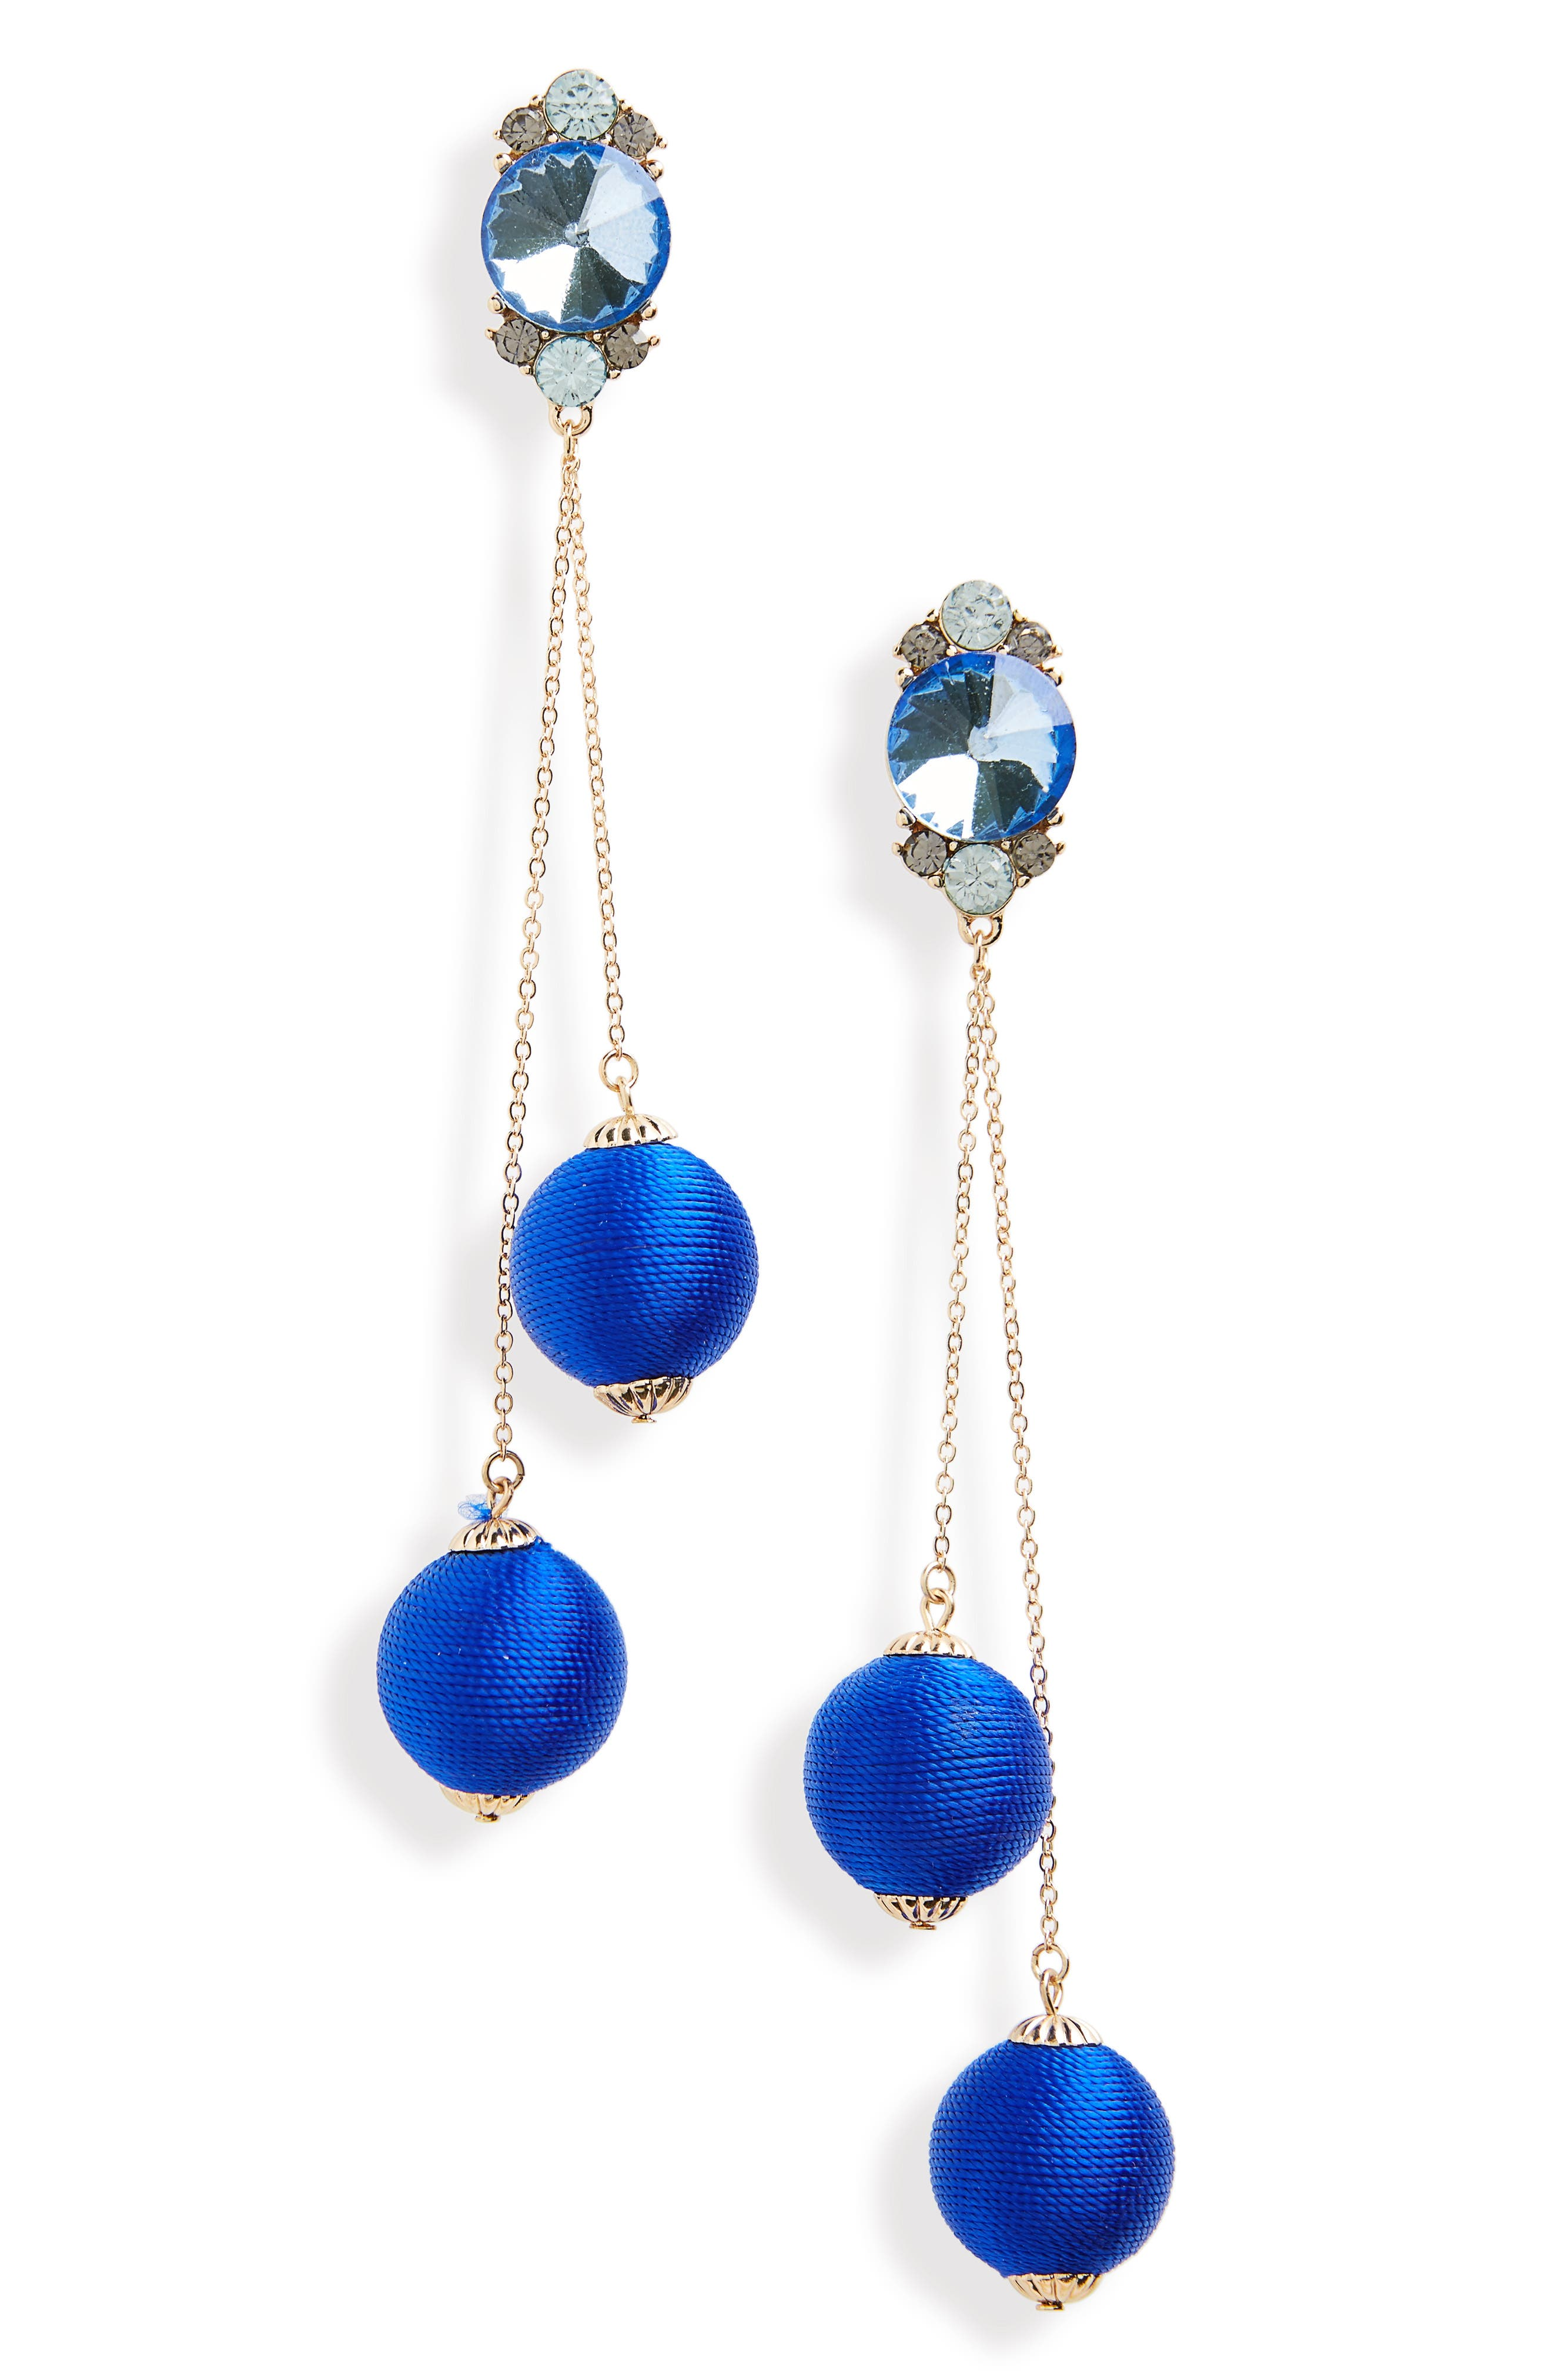 Crystal & Ball Drop Earrings,                             Main thumbnail 1, color,                             400